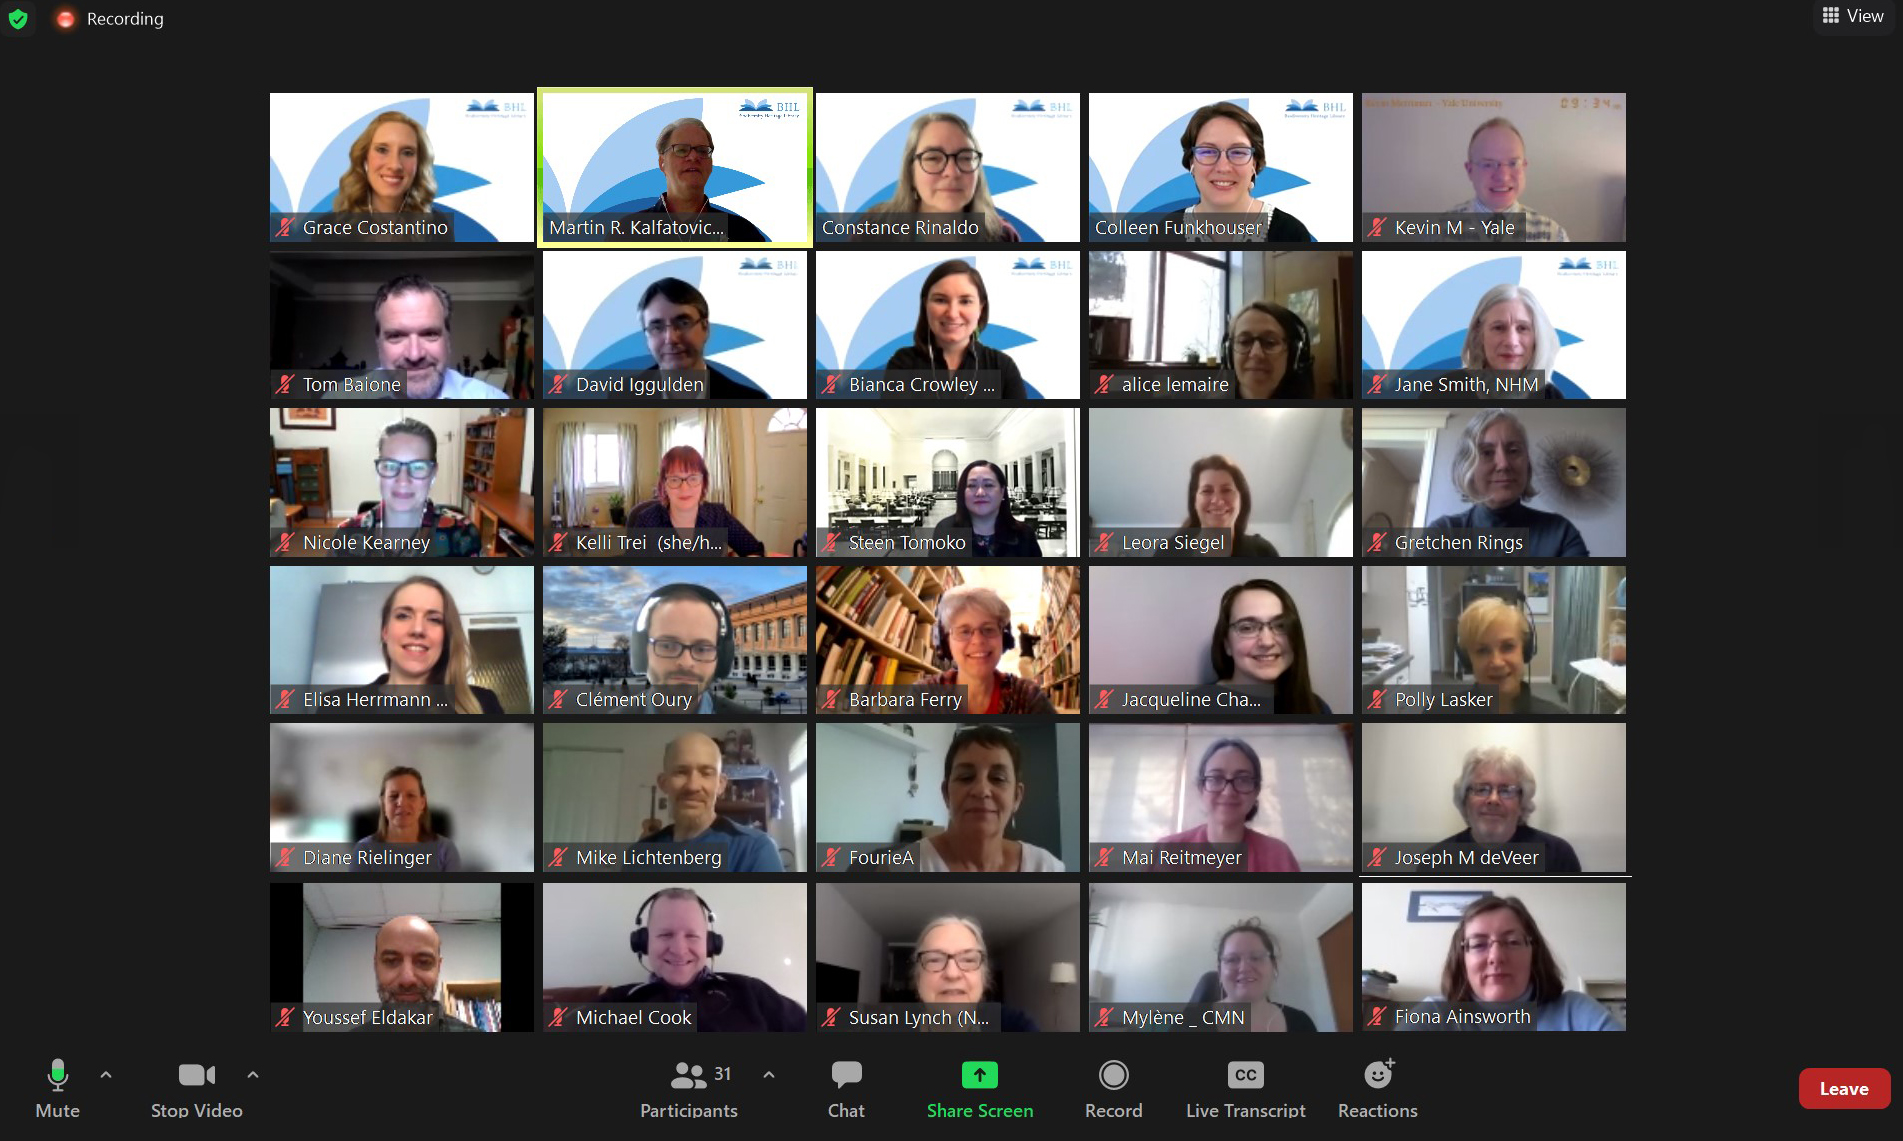 Screenshot of a Zoom meeting interface with a gallery view of people's heads